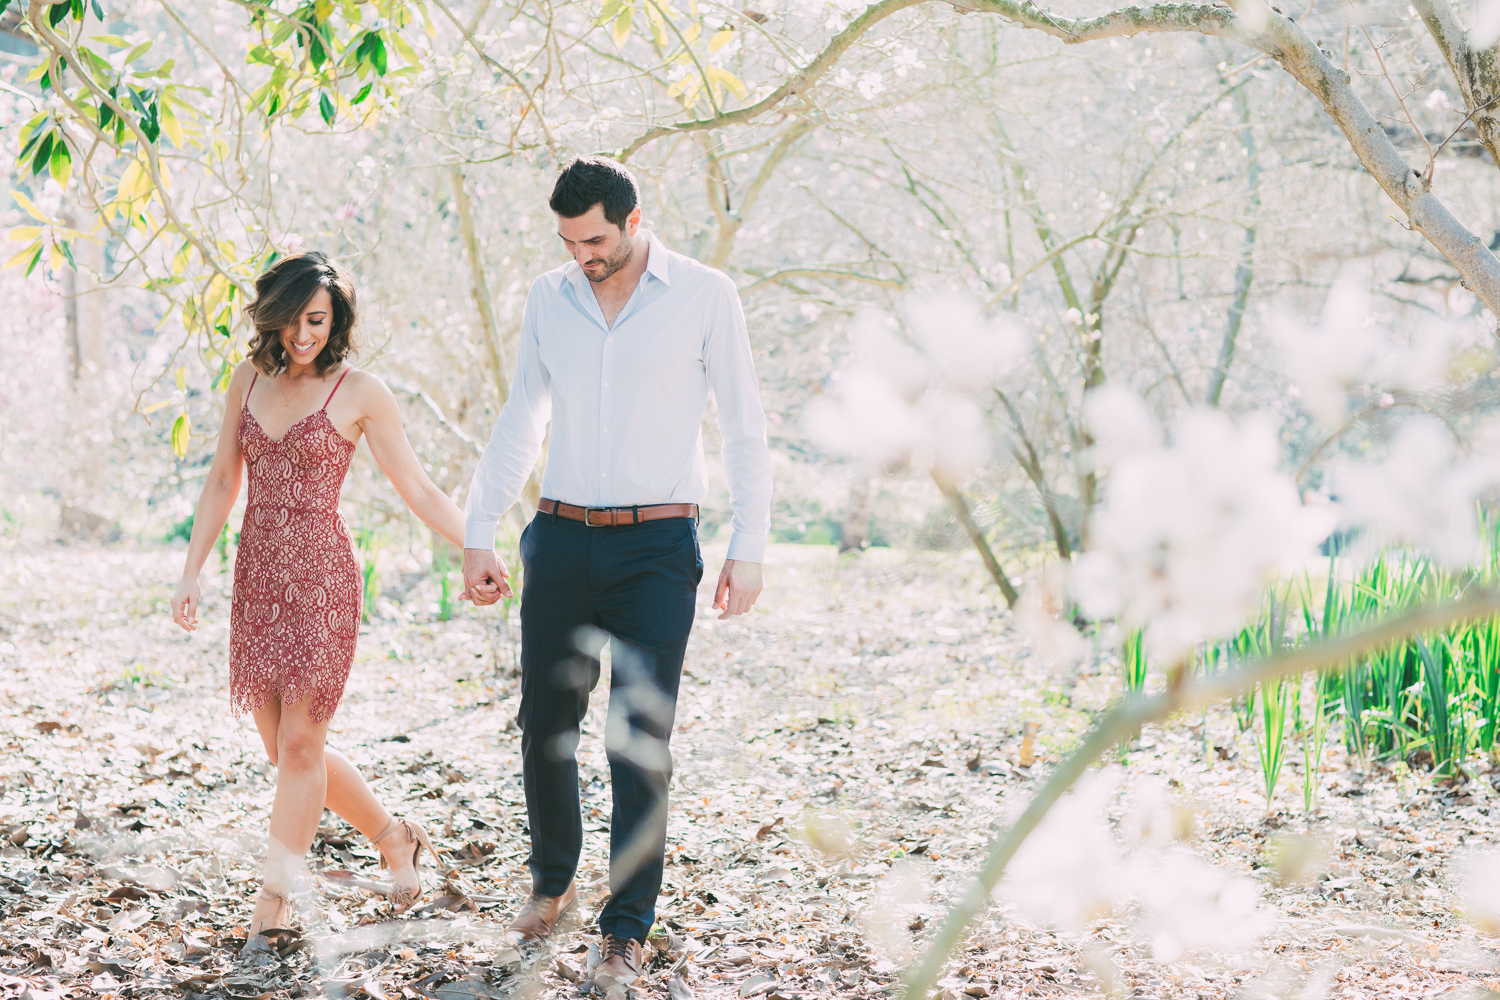 2016_02_21_JasonandYasmines_Engagement-168-Edit.jpg